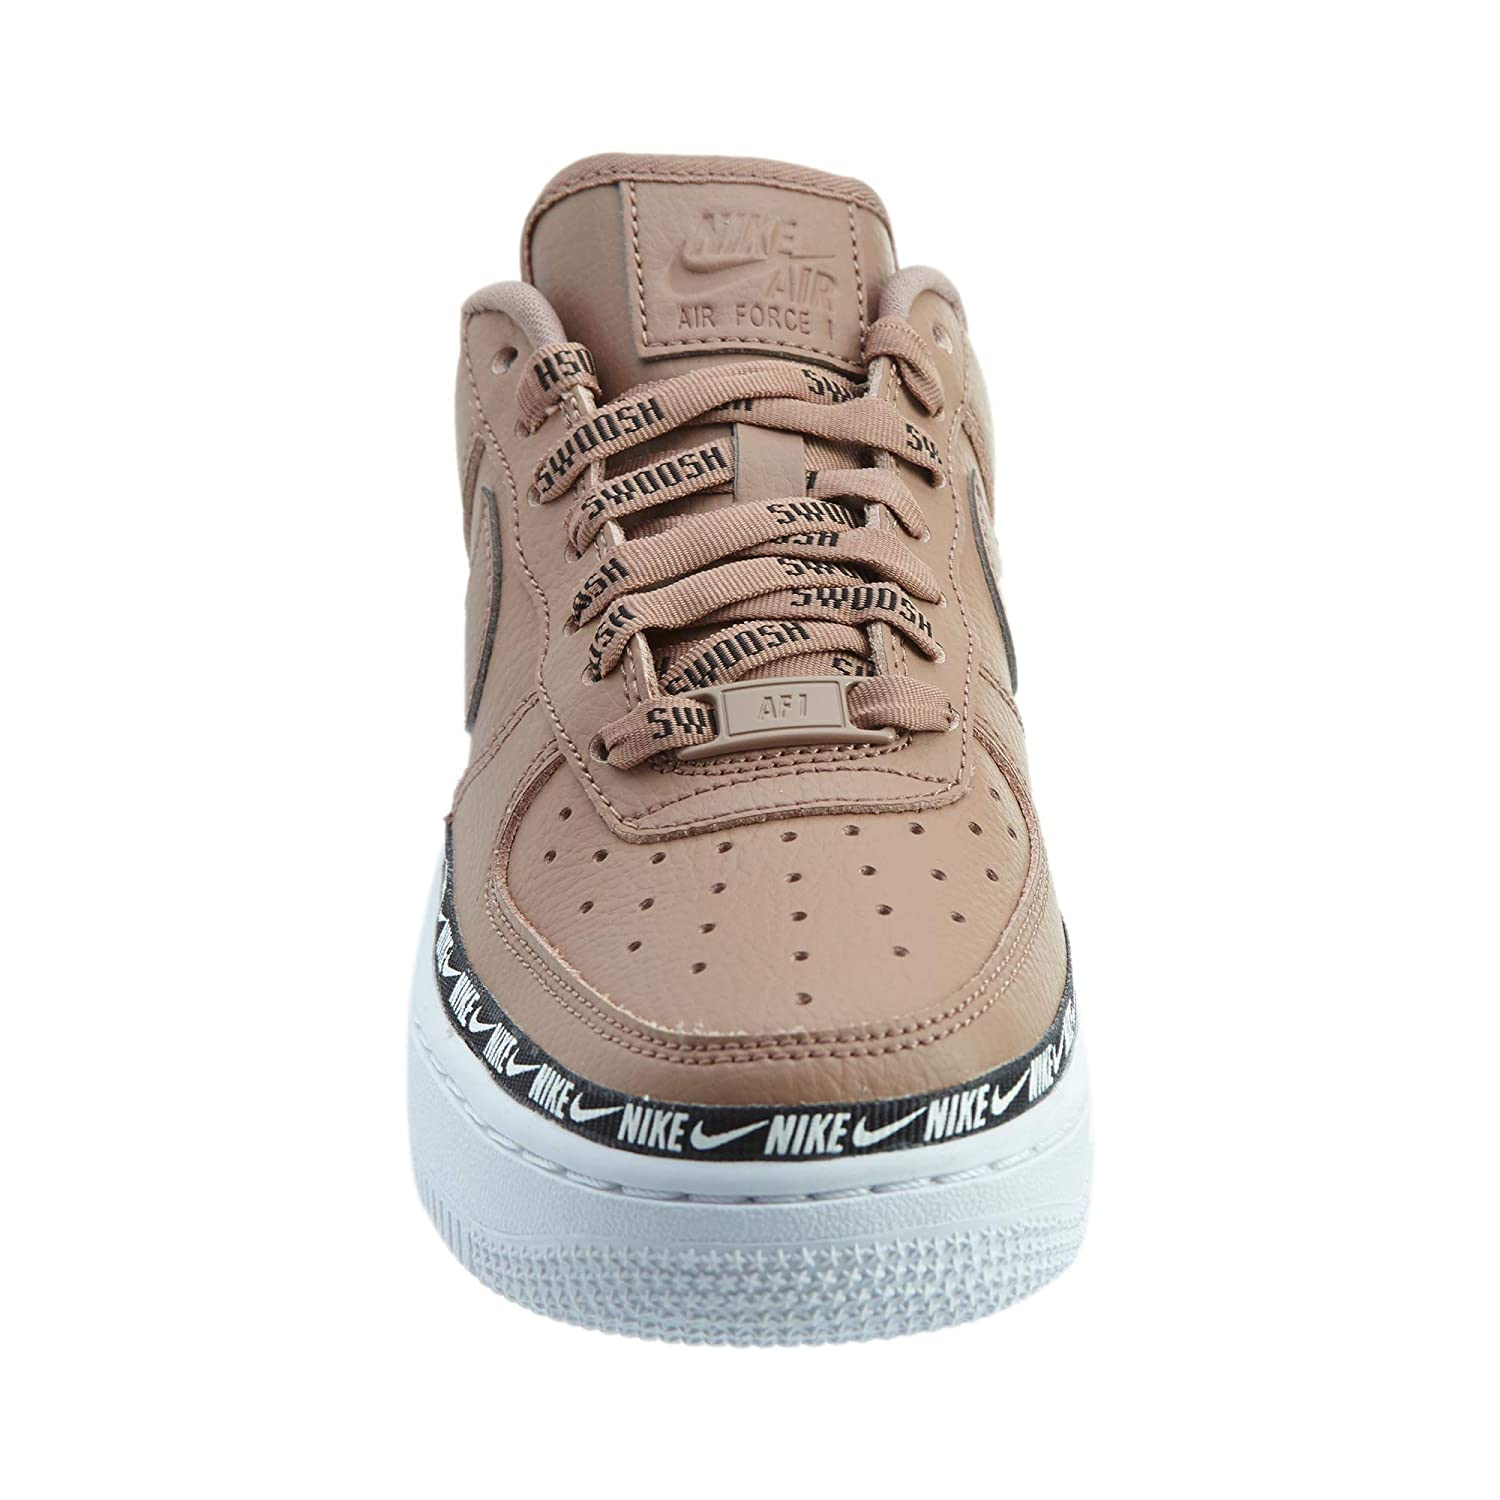 d90926ee4 Nike Women's Air Force 1 '07 Se PRM Style Ah6827 201 7 M US Desert Dust/Desert  Dust-Black: Buy Online at Low Prices in India - Amazon.in